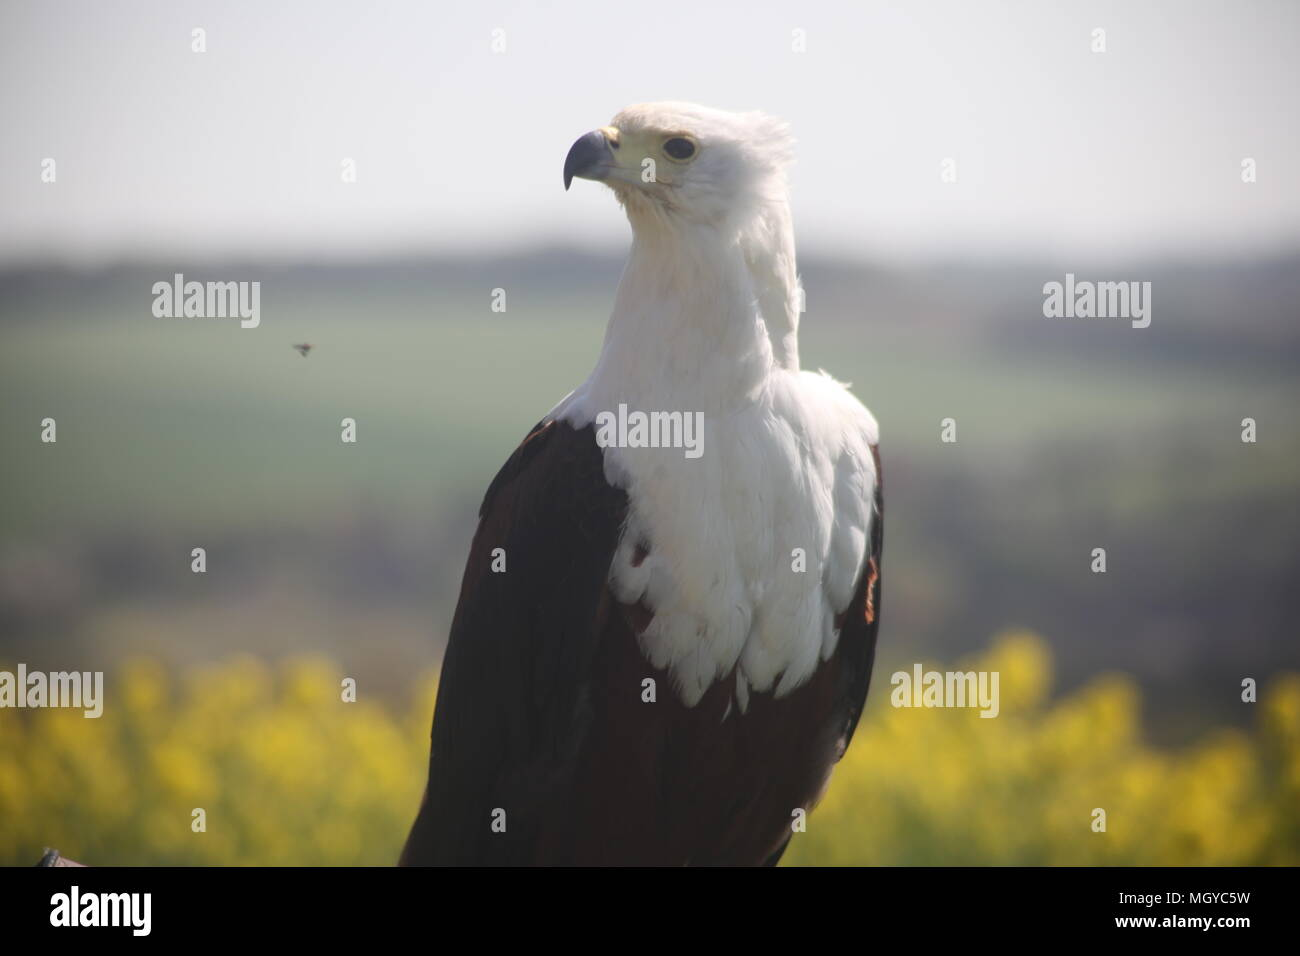 Taking Photos Of Birds Of Prey Is My Hobby - Stock Image